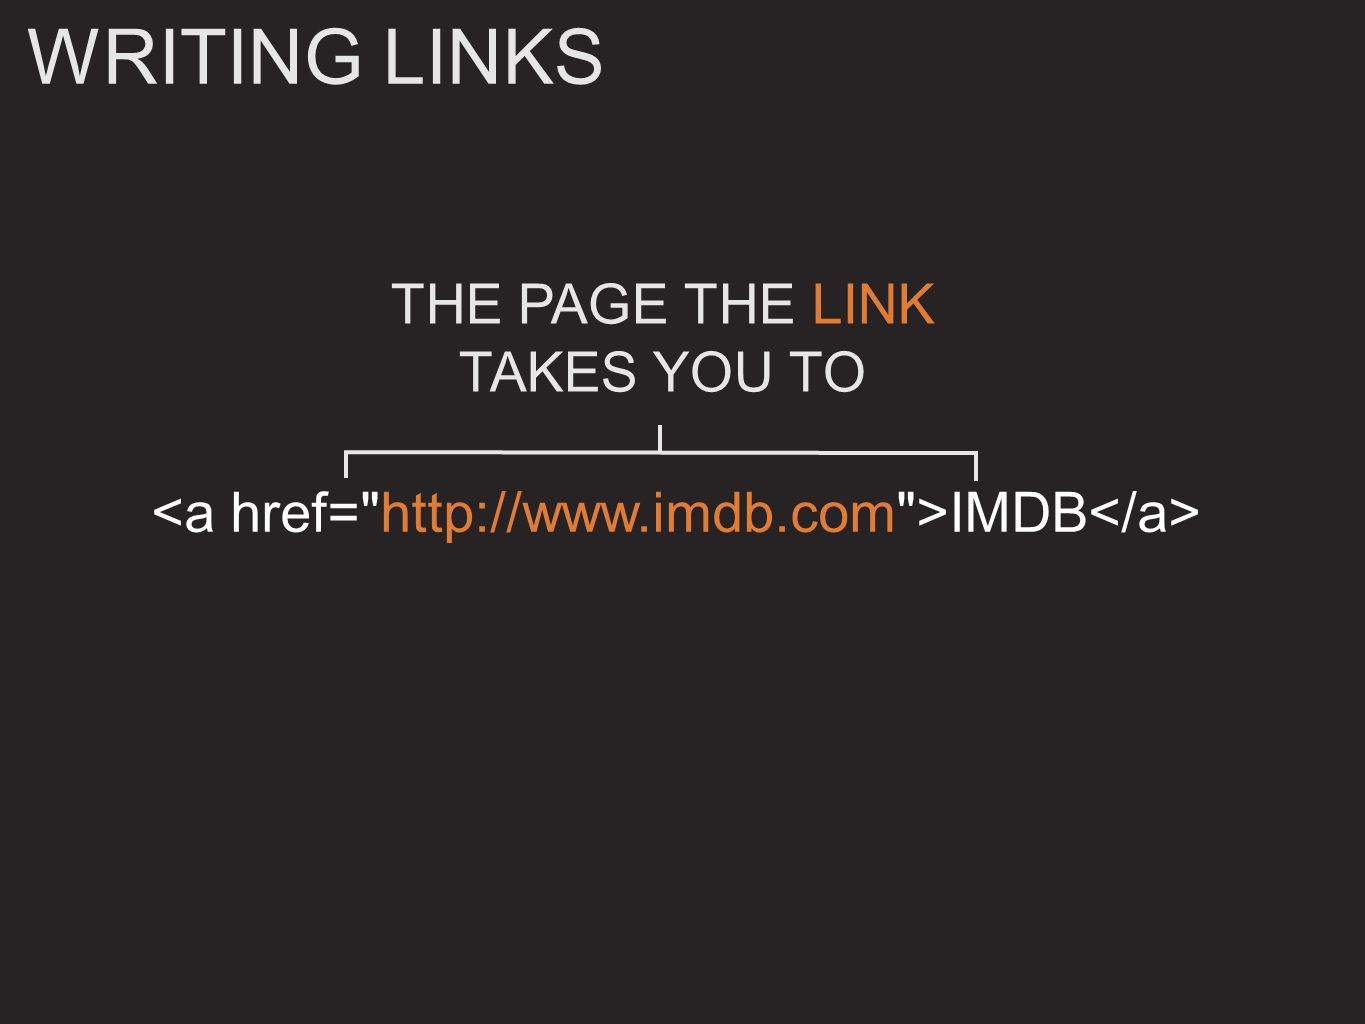 WRITING LINKS IMDB THE PAGE THE LINK TAKES YOU TO THE TEXT THE USER CLICKS ON